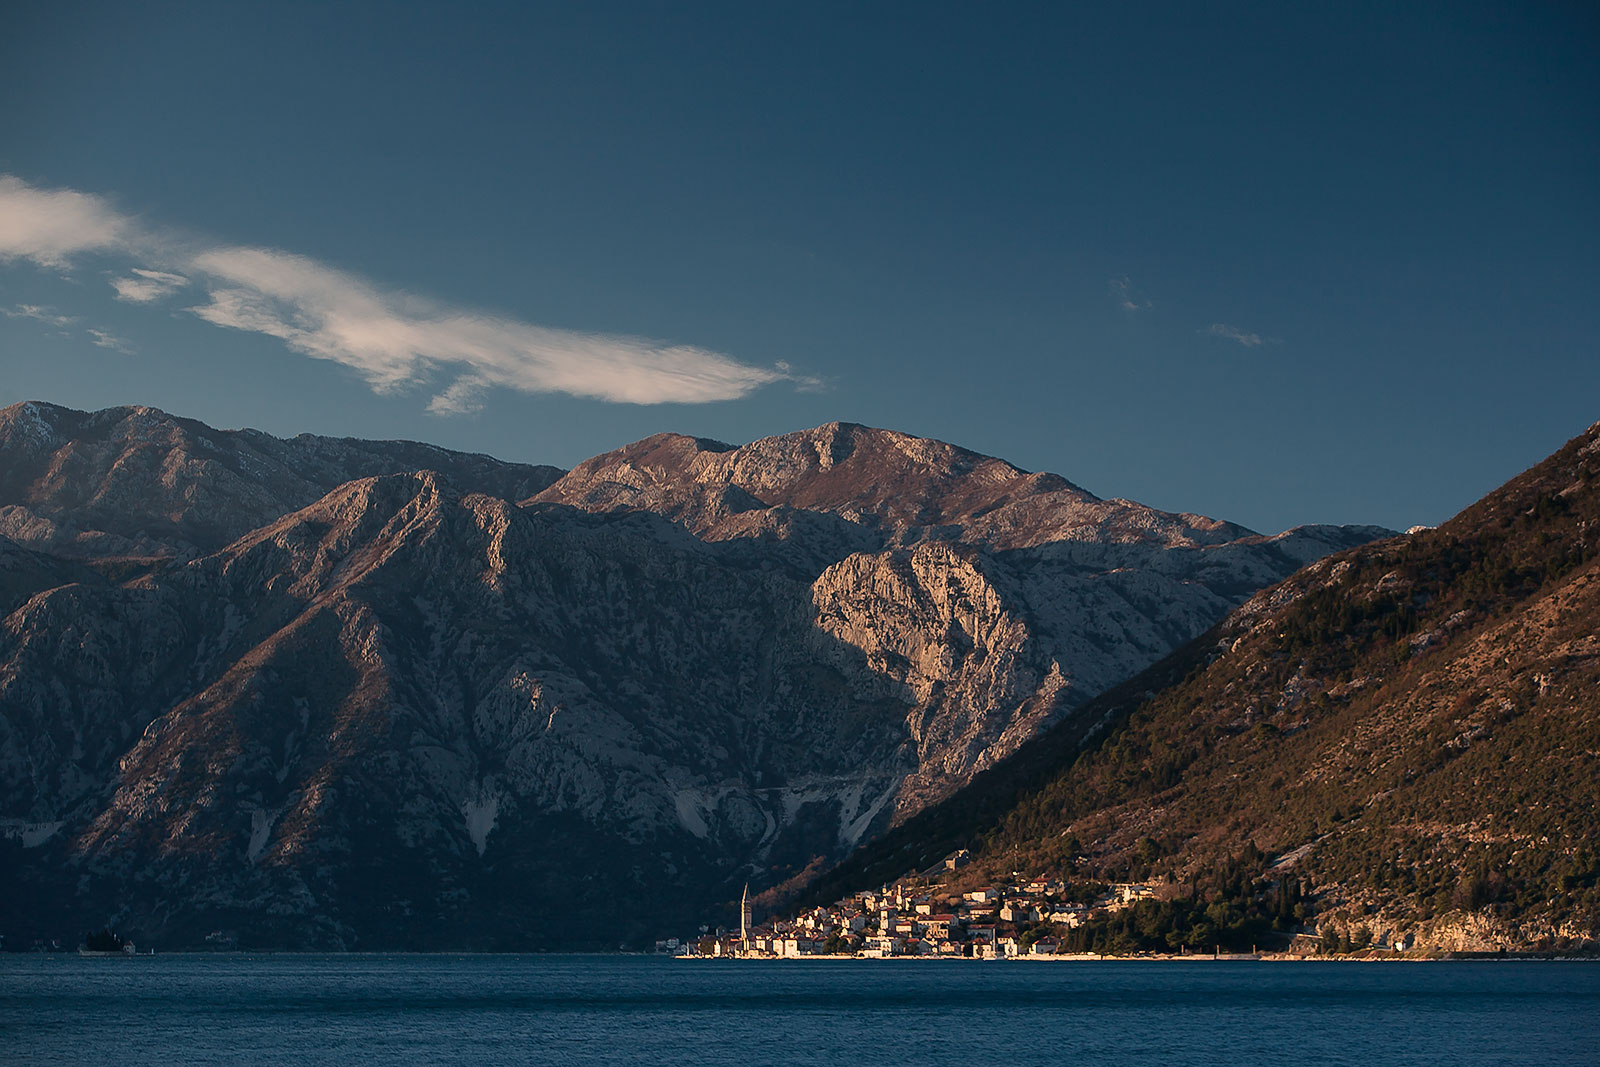 Mountains in Montenegro